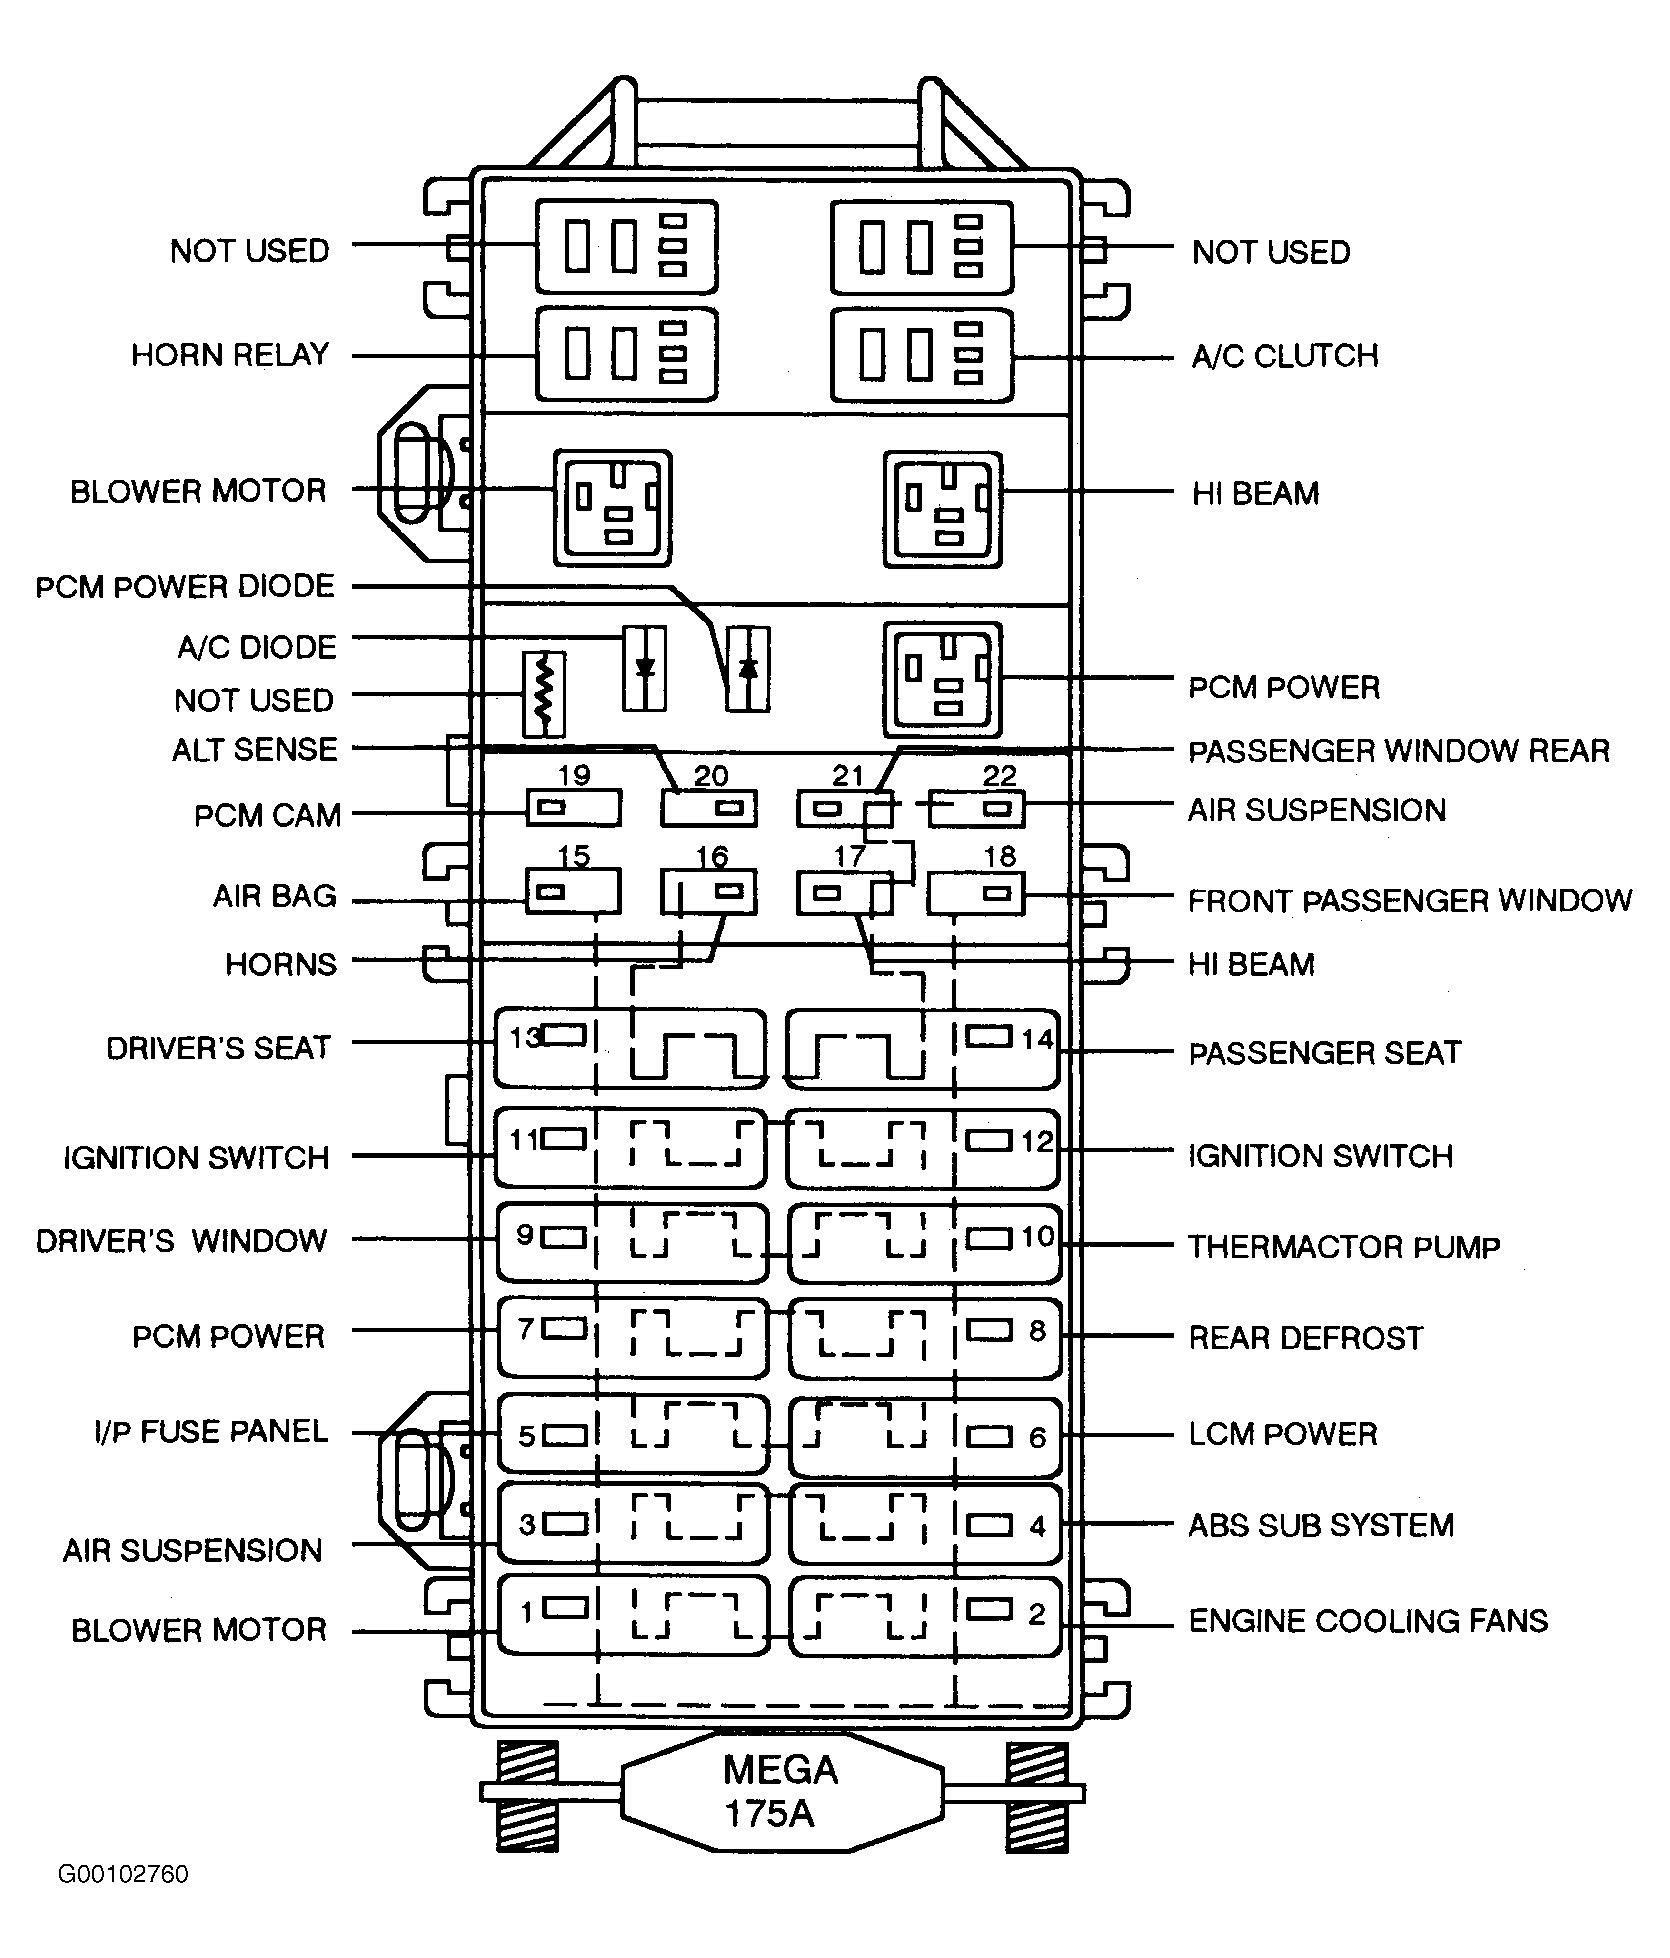 1990 lincoln town car fuse diagram electrical wiring diagrams rh  wiringforall today 1986 Lincoln Town Car Wiring Diagram 2005 Lincoln Town  Car Wiring ...